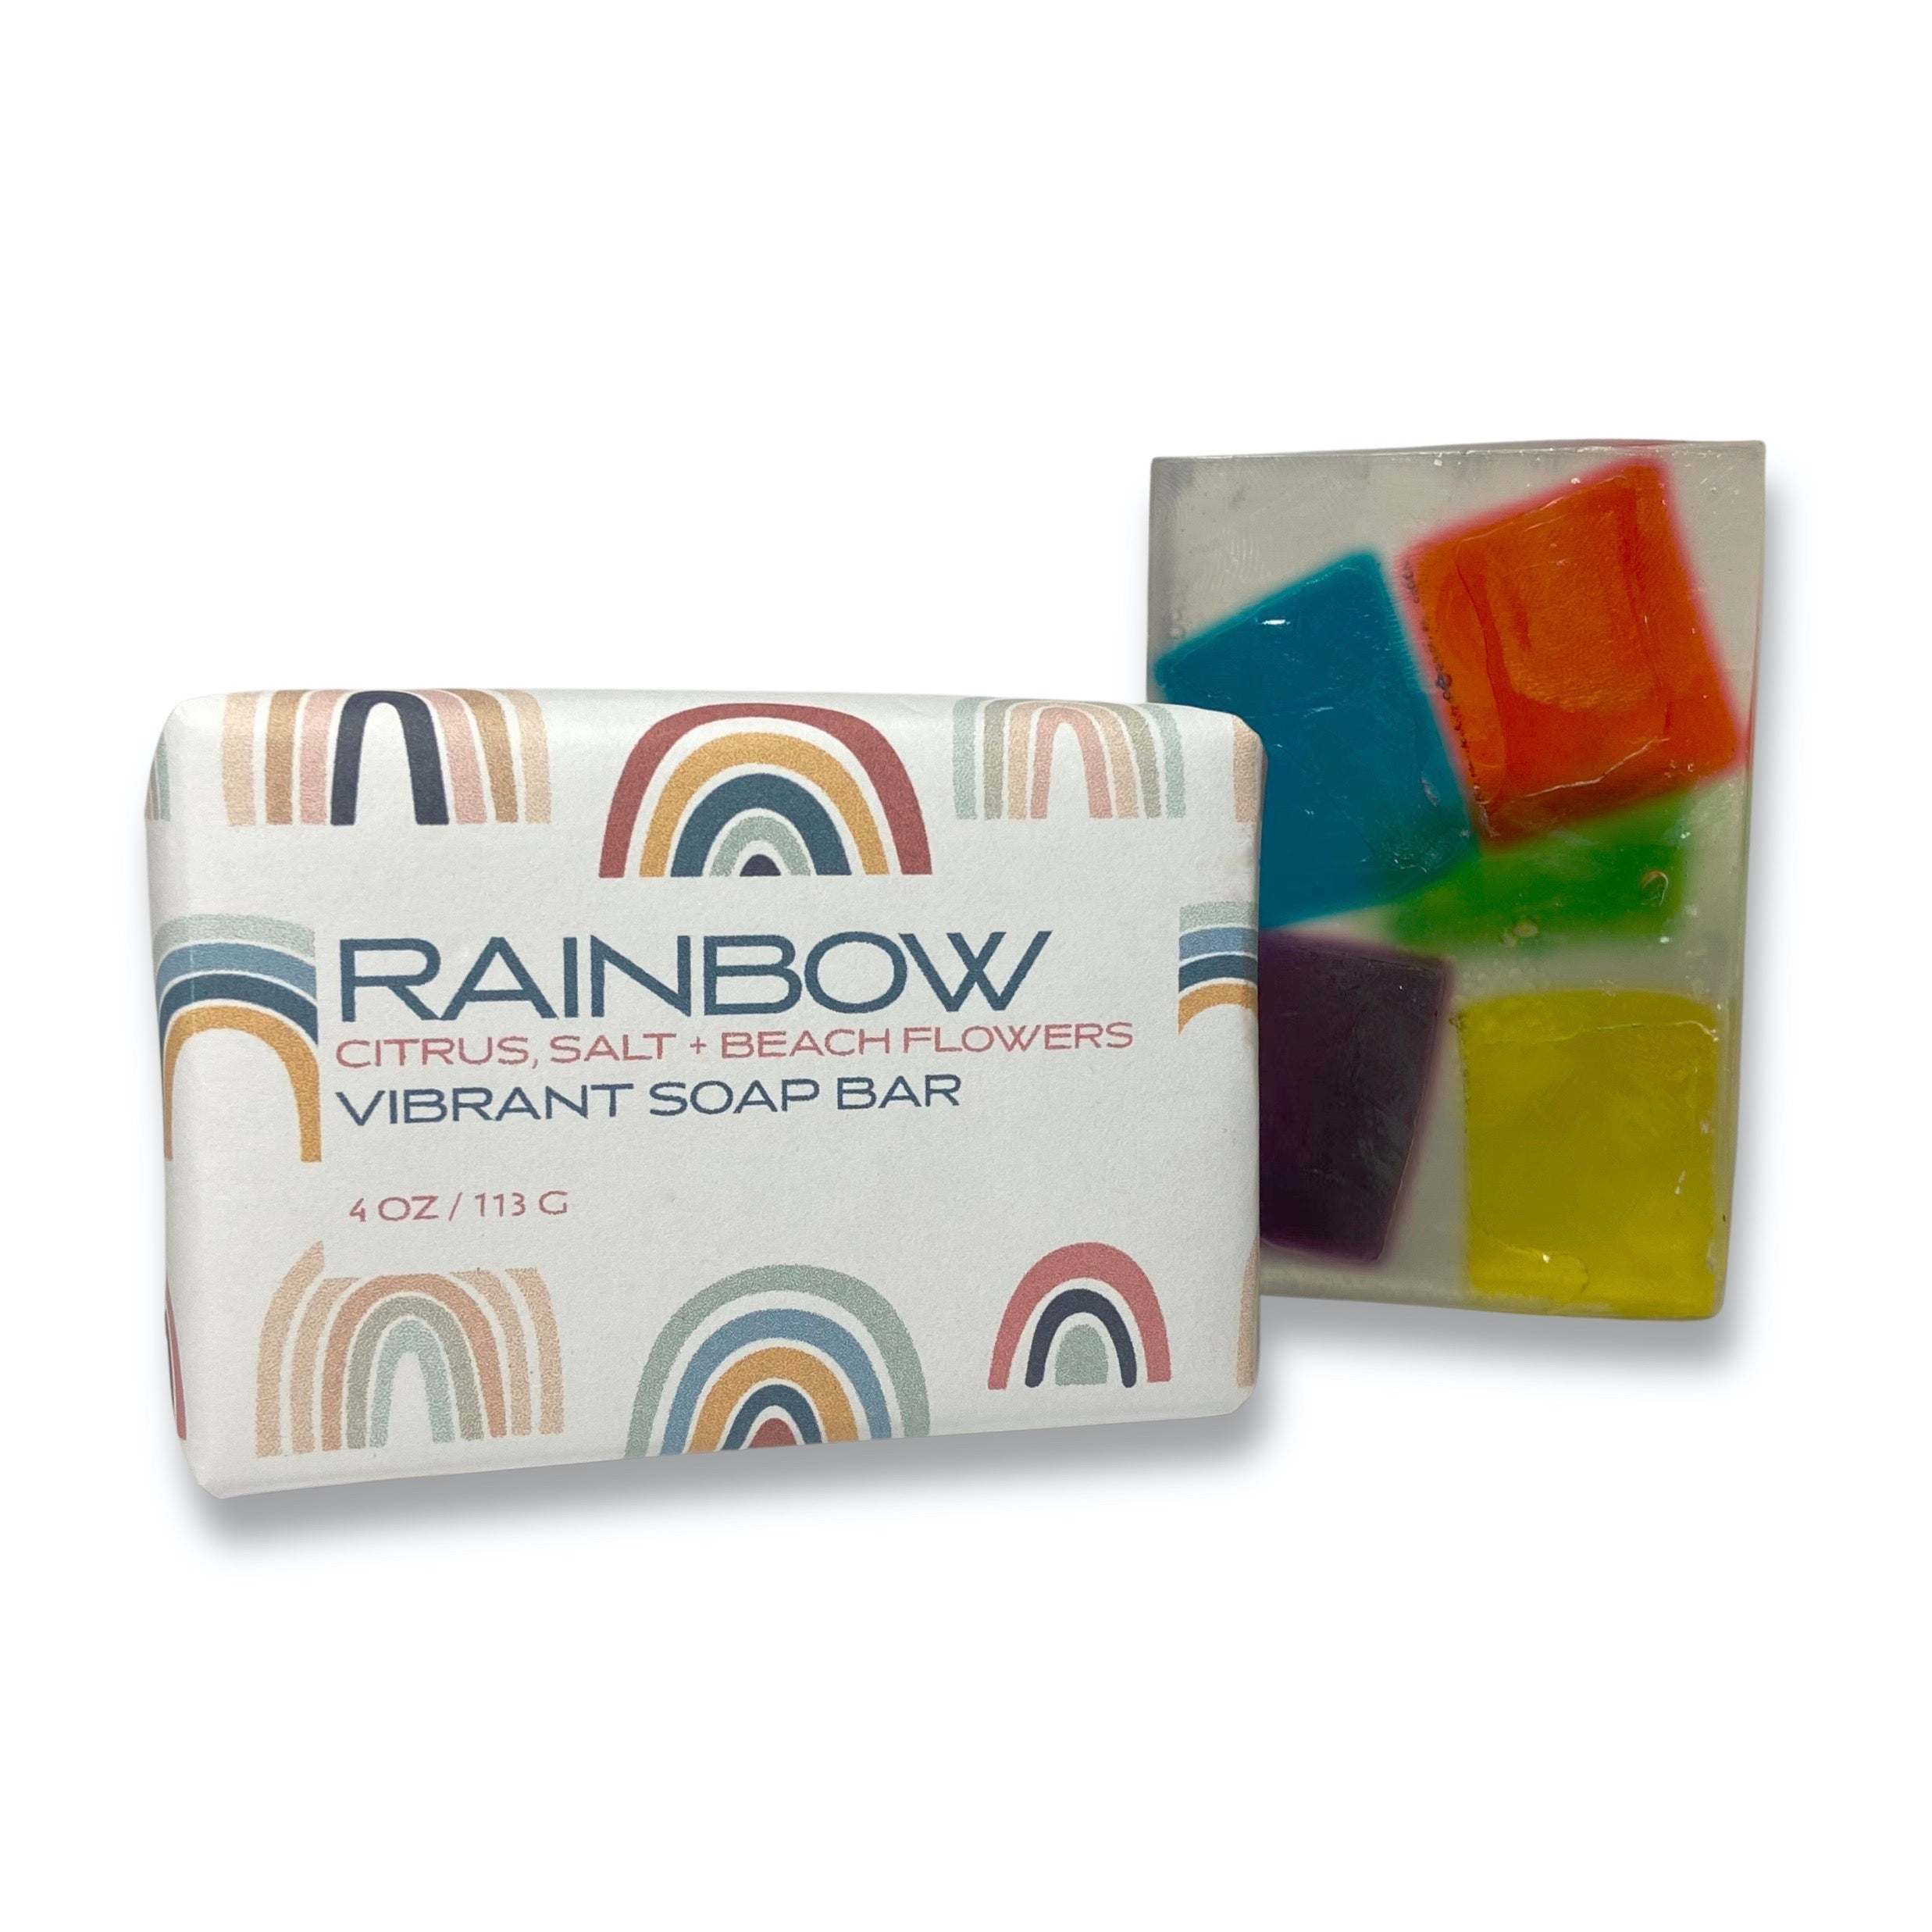 RAINBOW Vibrant Soap Bar